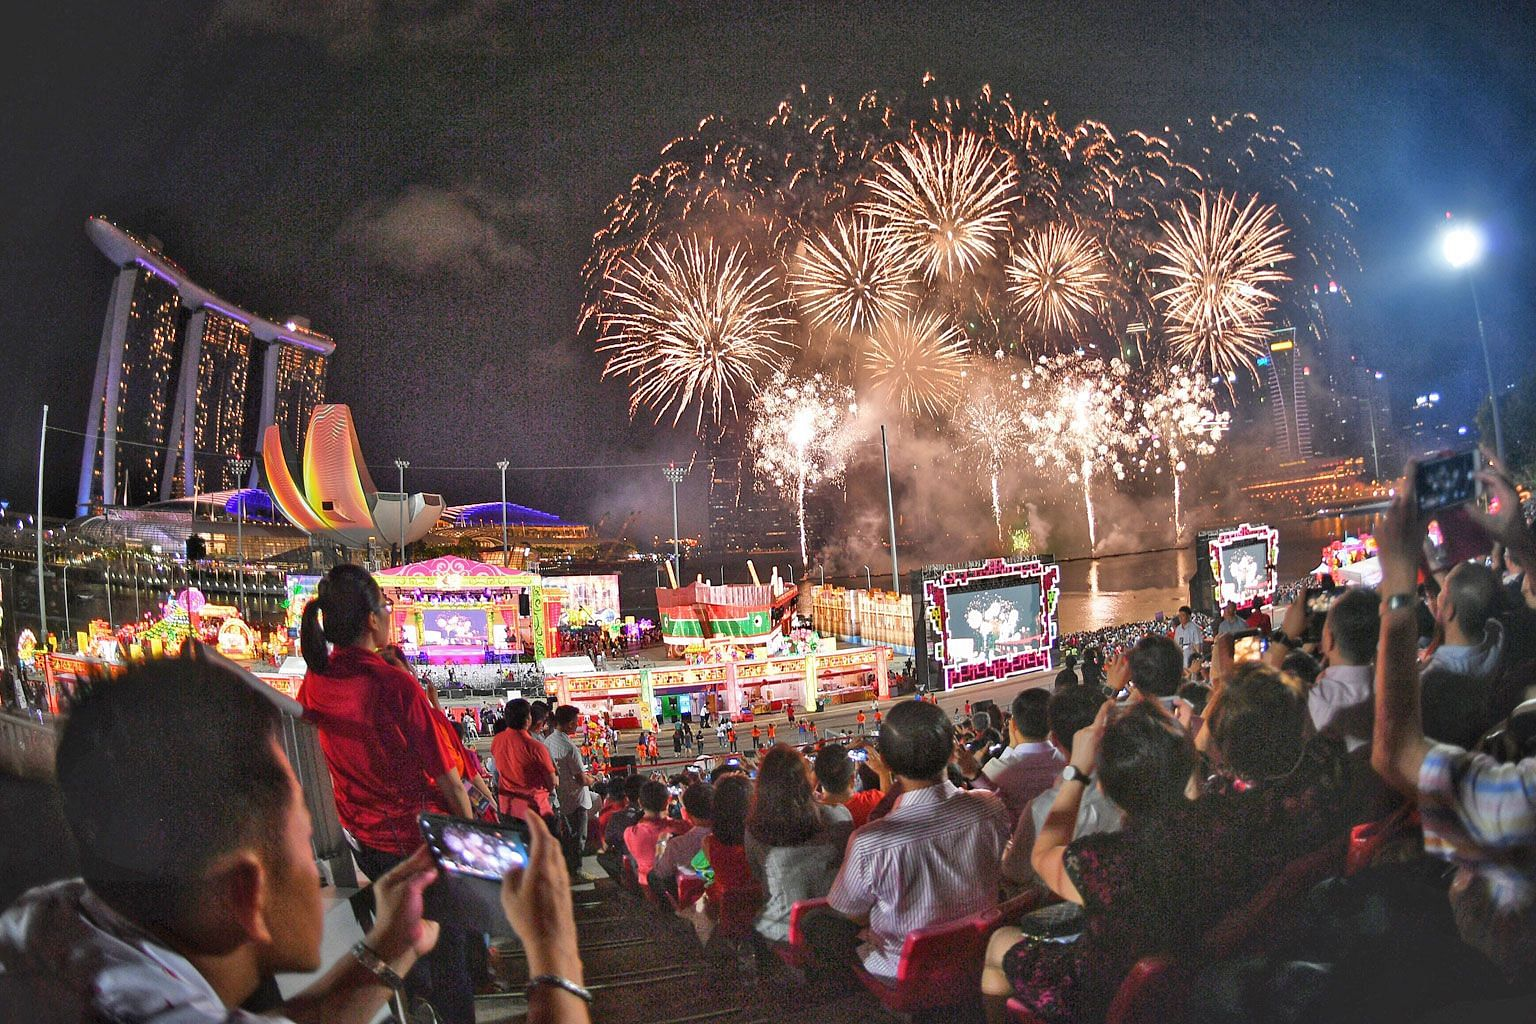 Mr Ang Wei Neng (Jurong GRC) recounted his experience as chairman of the River Hongbao organising committee and how the festival's fireworks display almost did not take place because a PUB executive had refused to issue a permit for the fireworks as